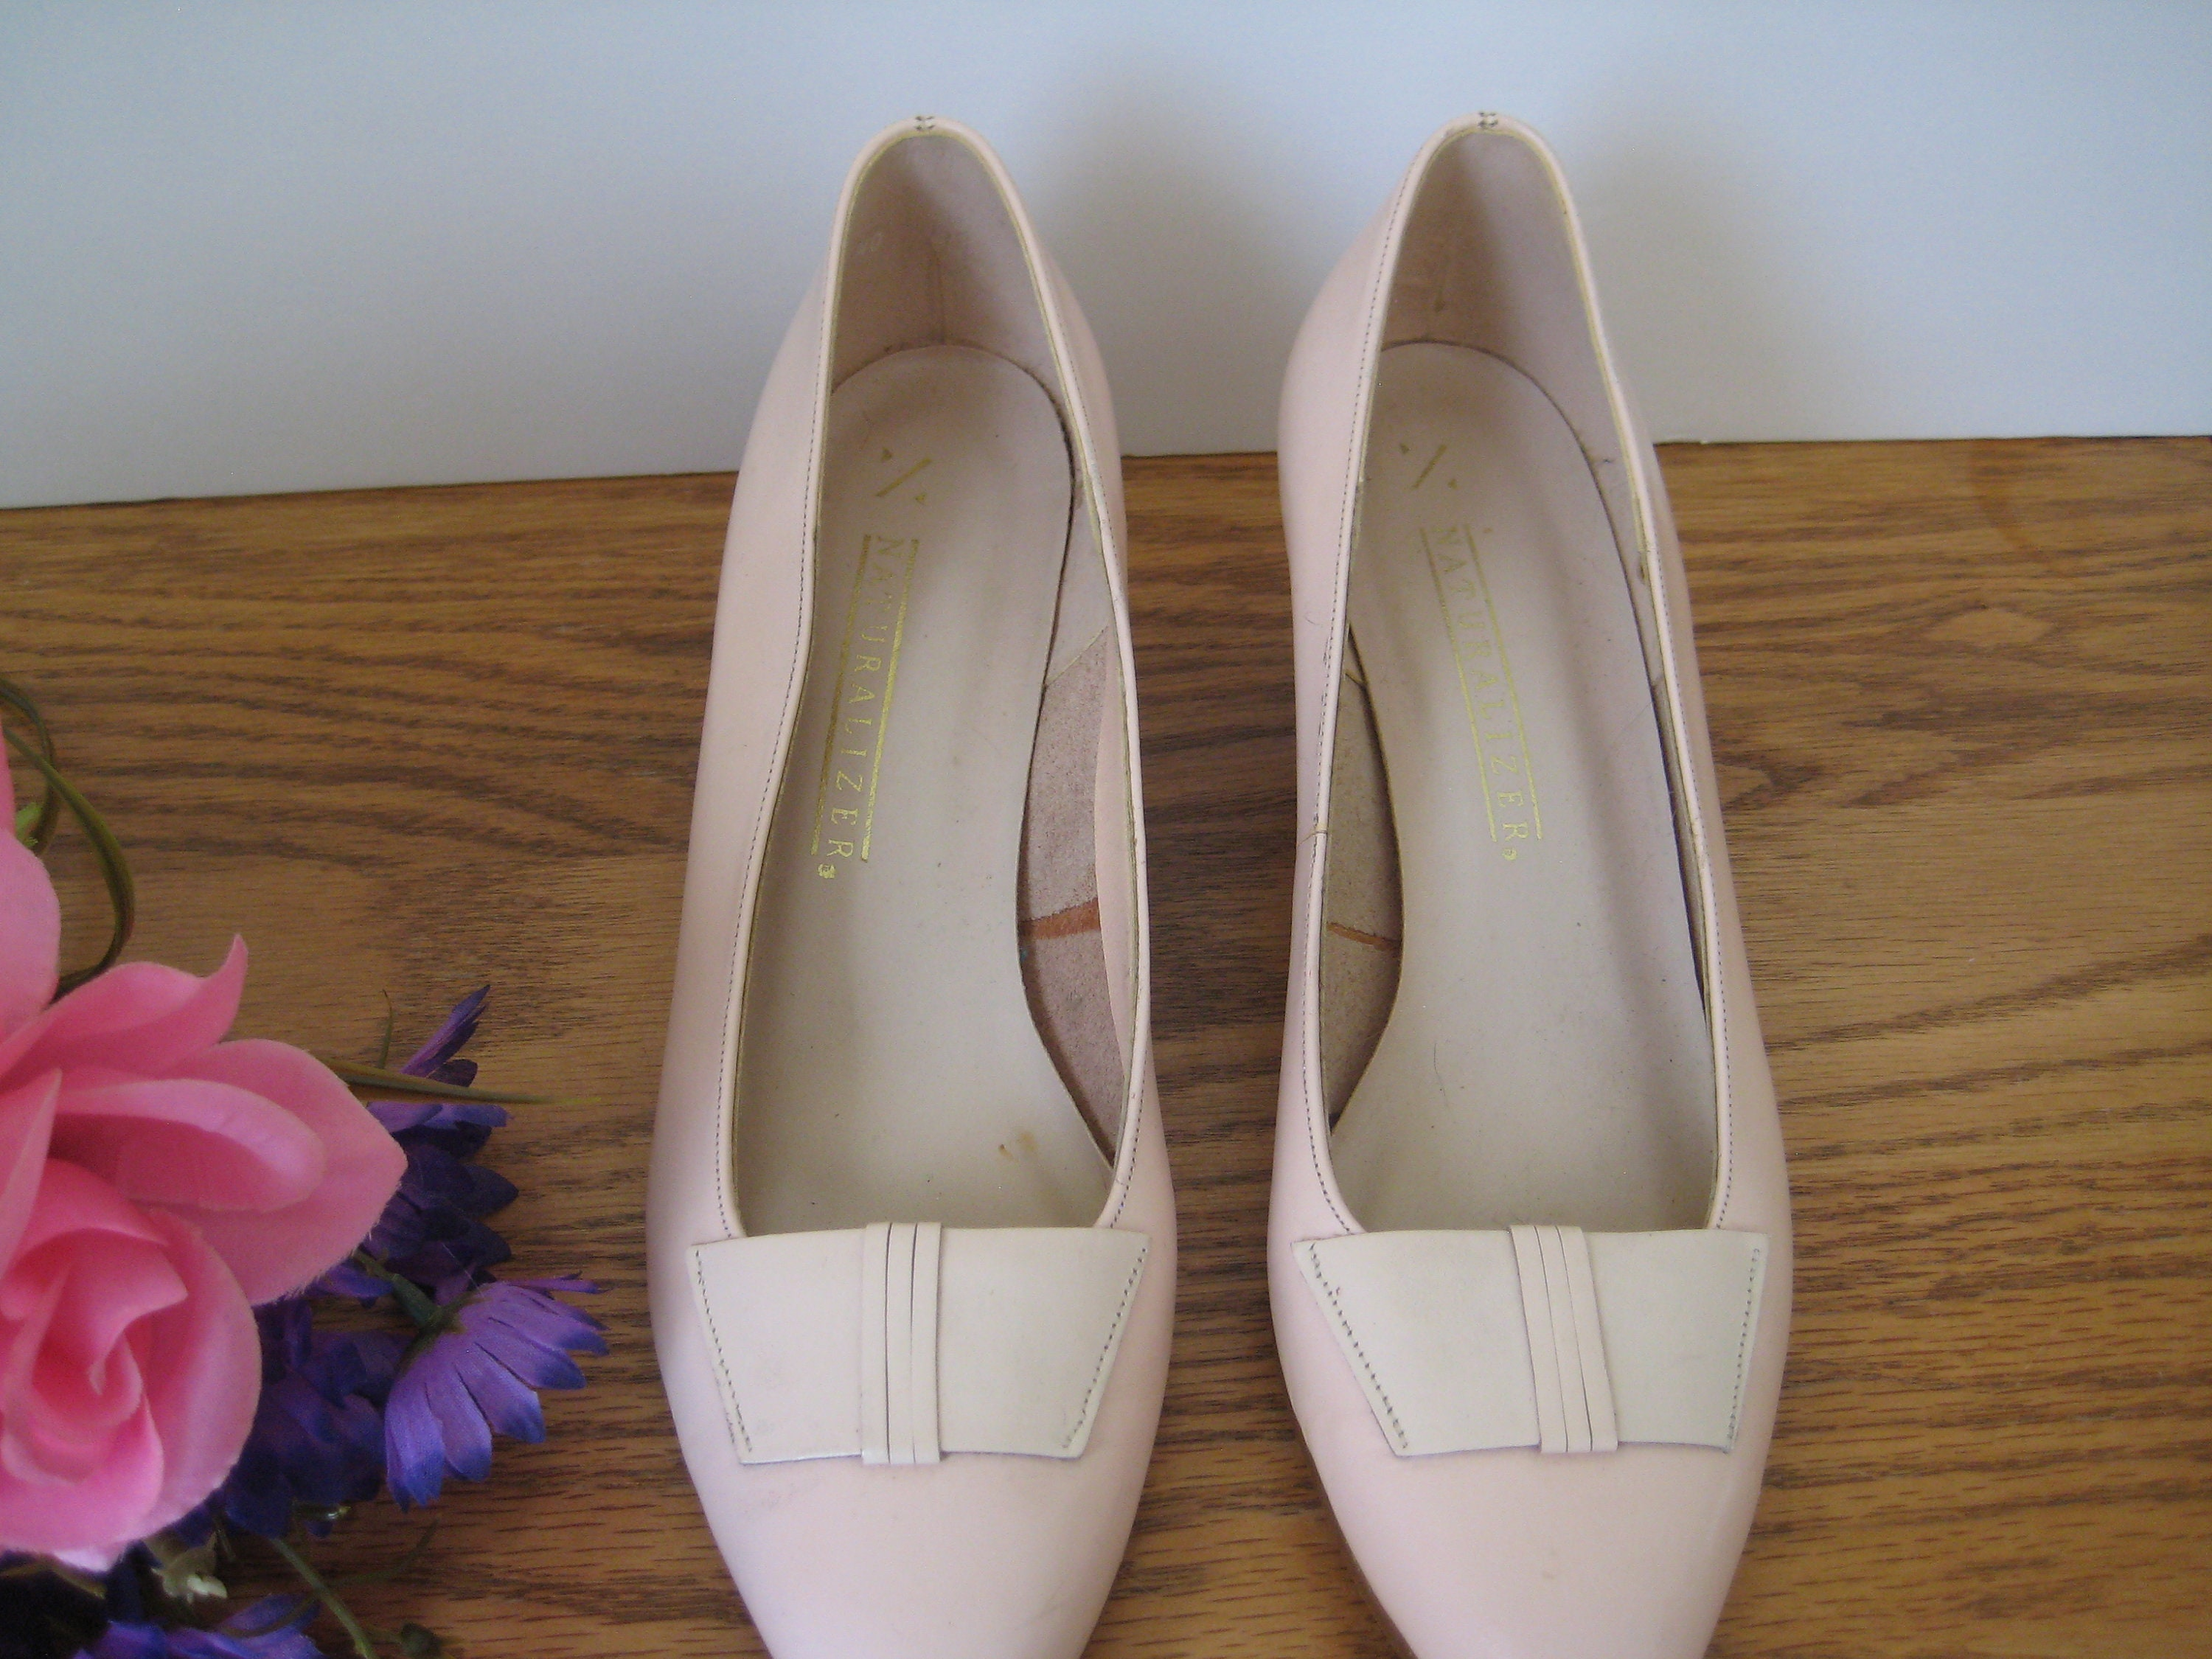 bae1fb2f9eb5a Vintage Naturalizer Pink Shoes With Bow Detail - Light Pink Pumps Leather  Upper Bow Detail Size 7 - Pink Wedding Shoes